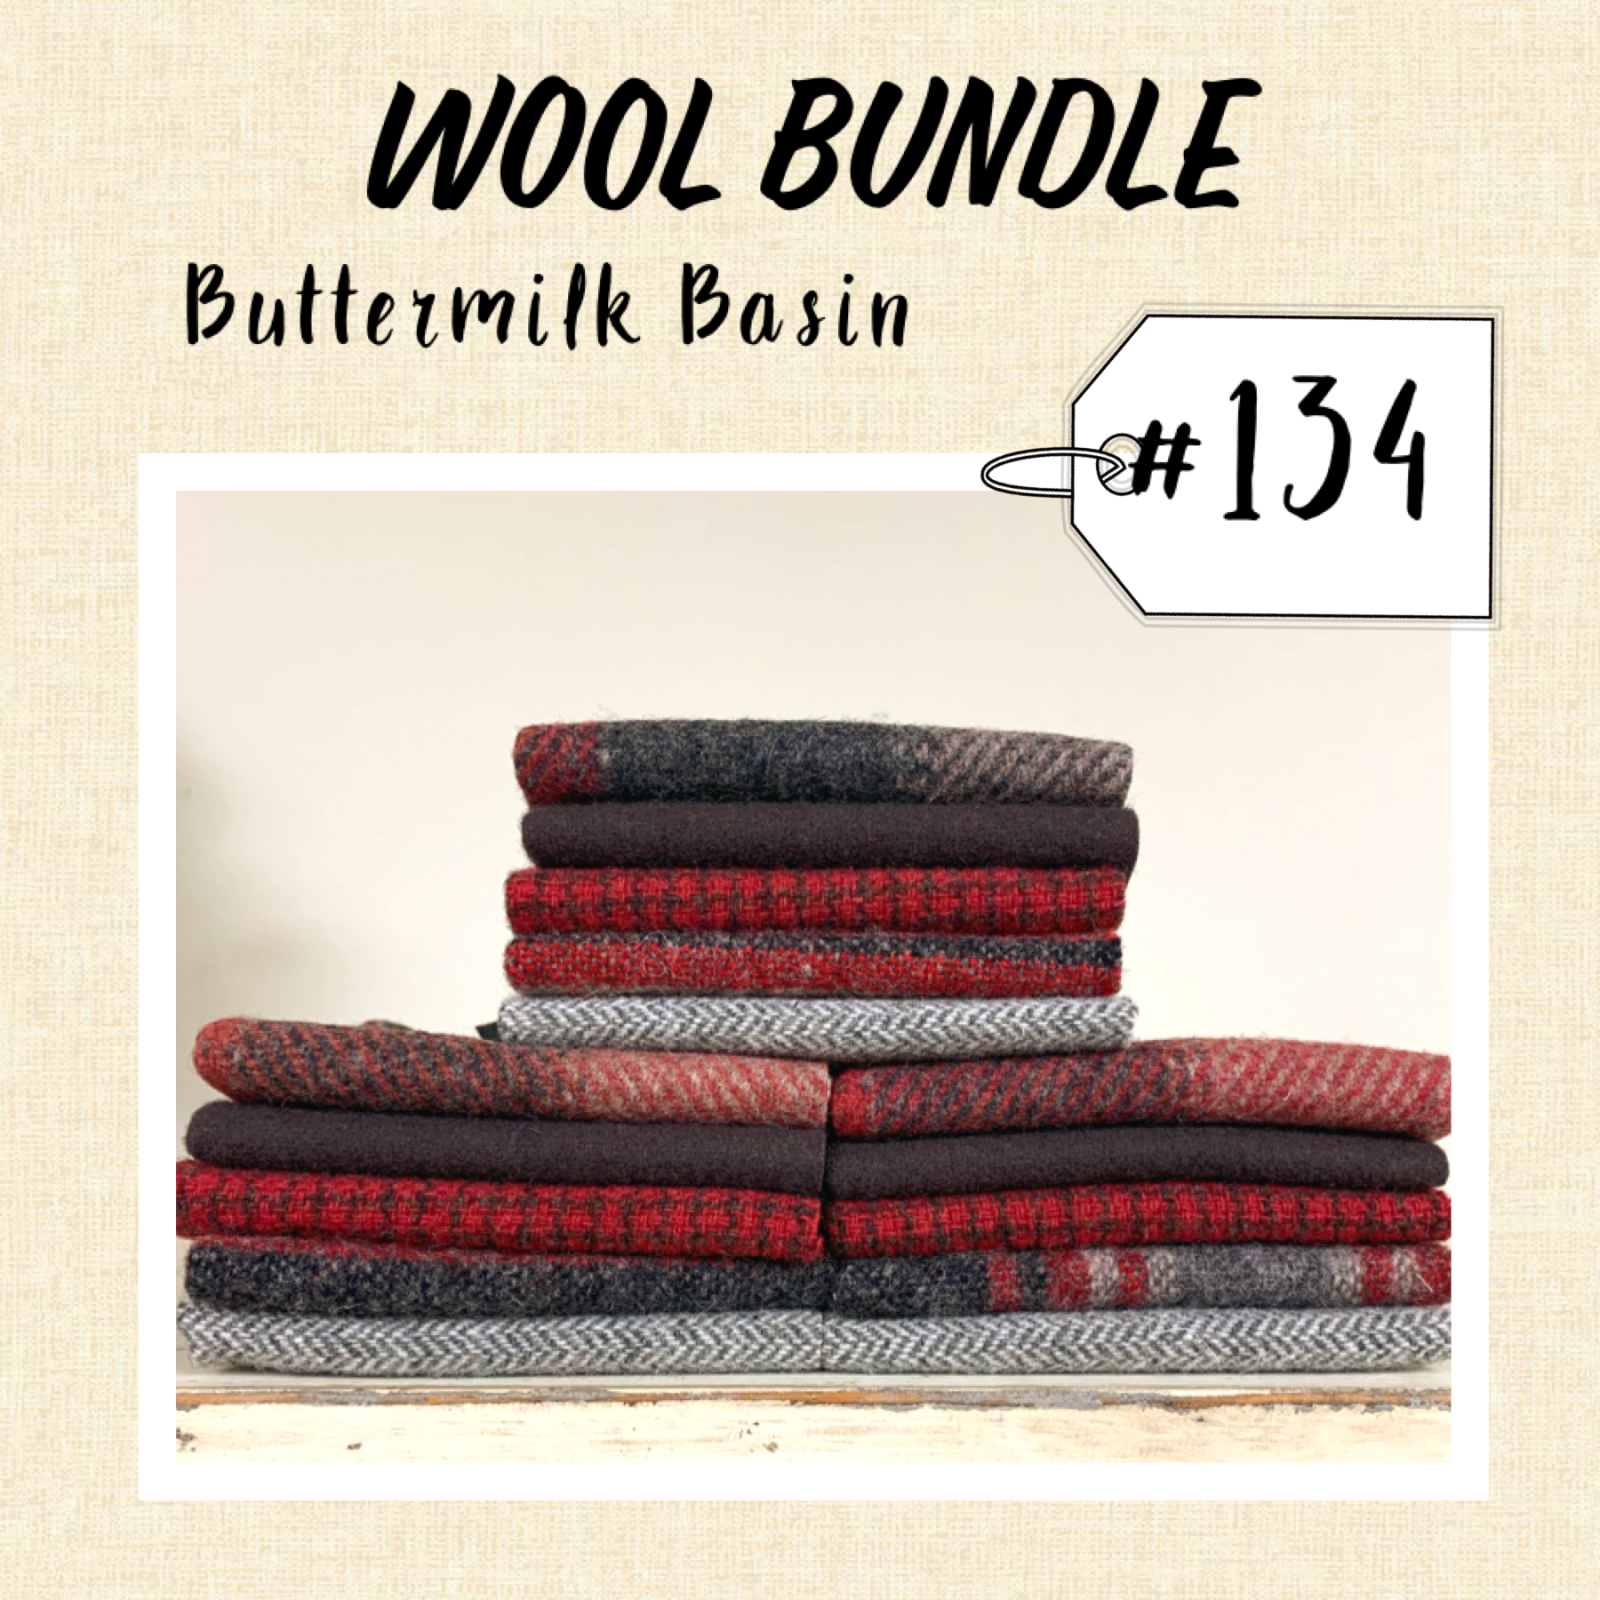 Wool Bundle #134